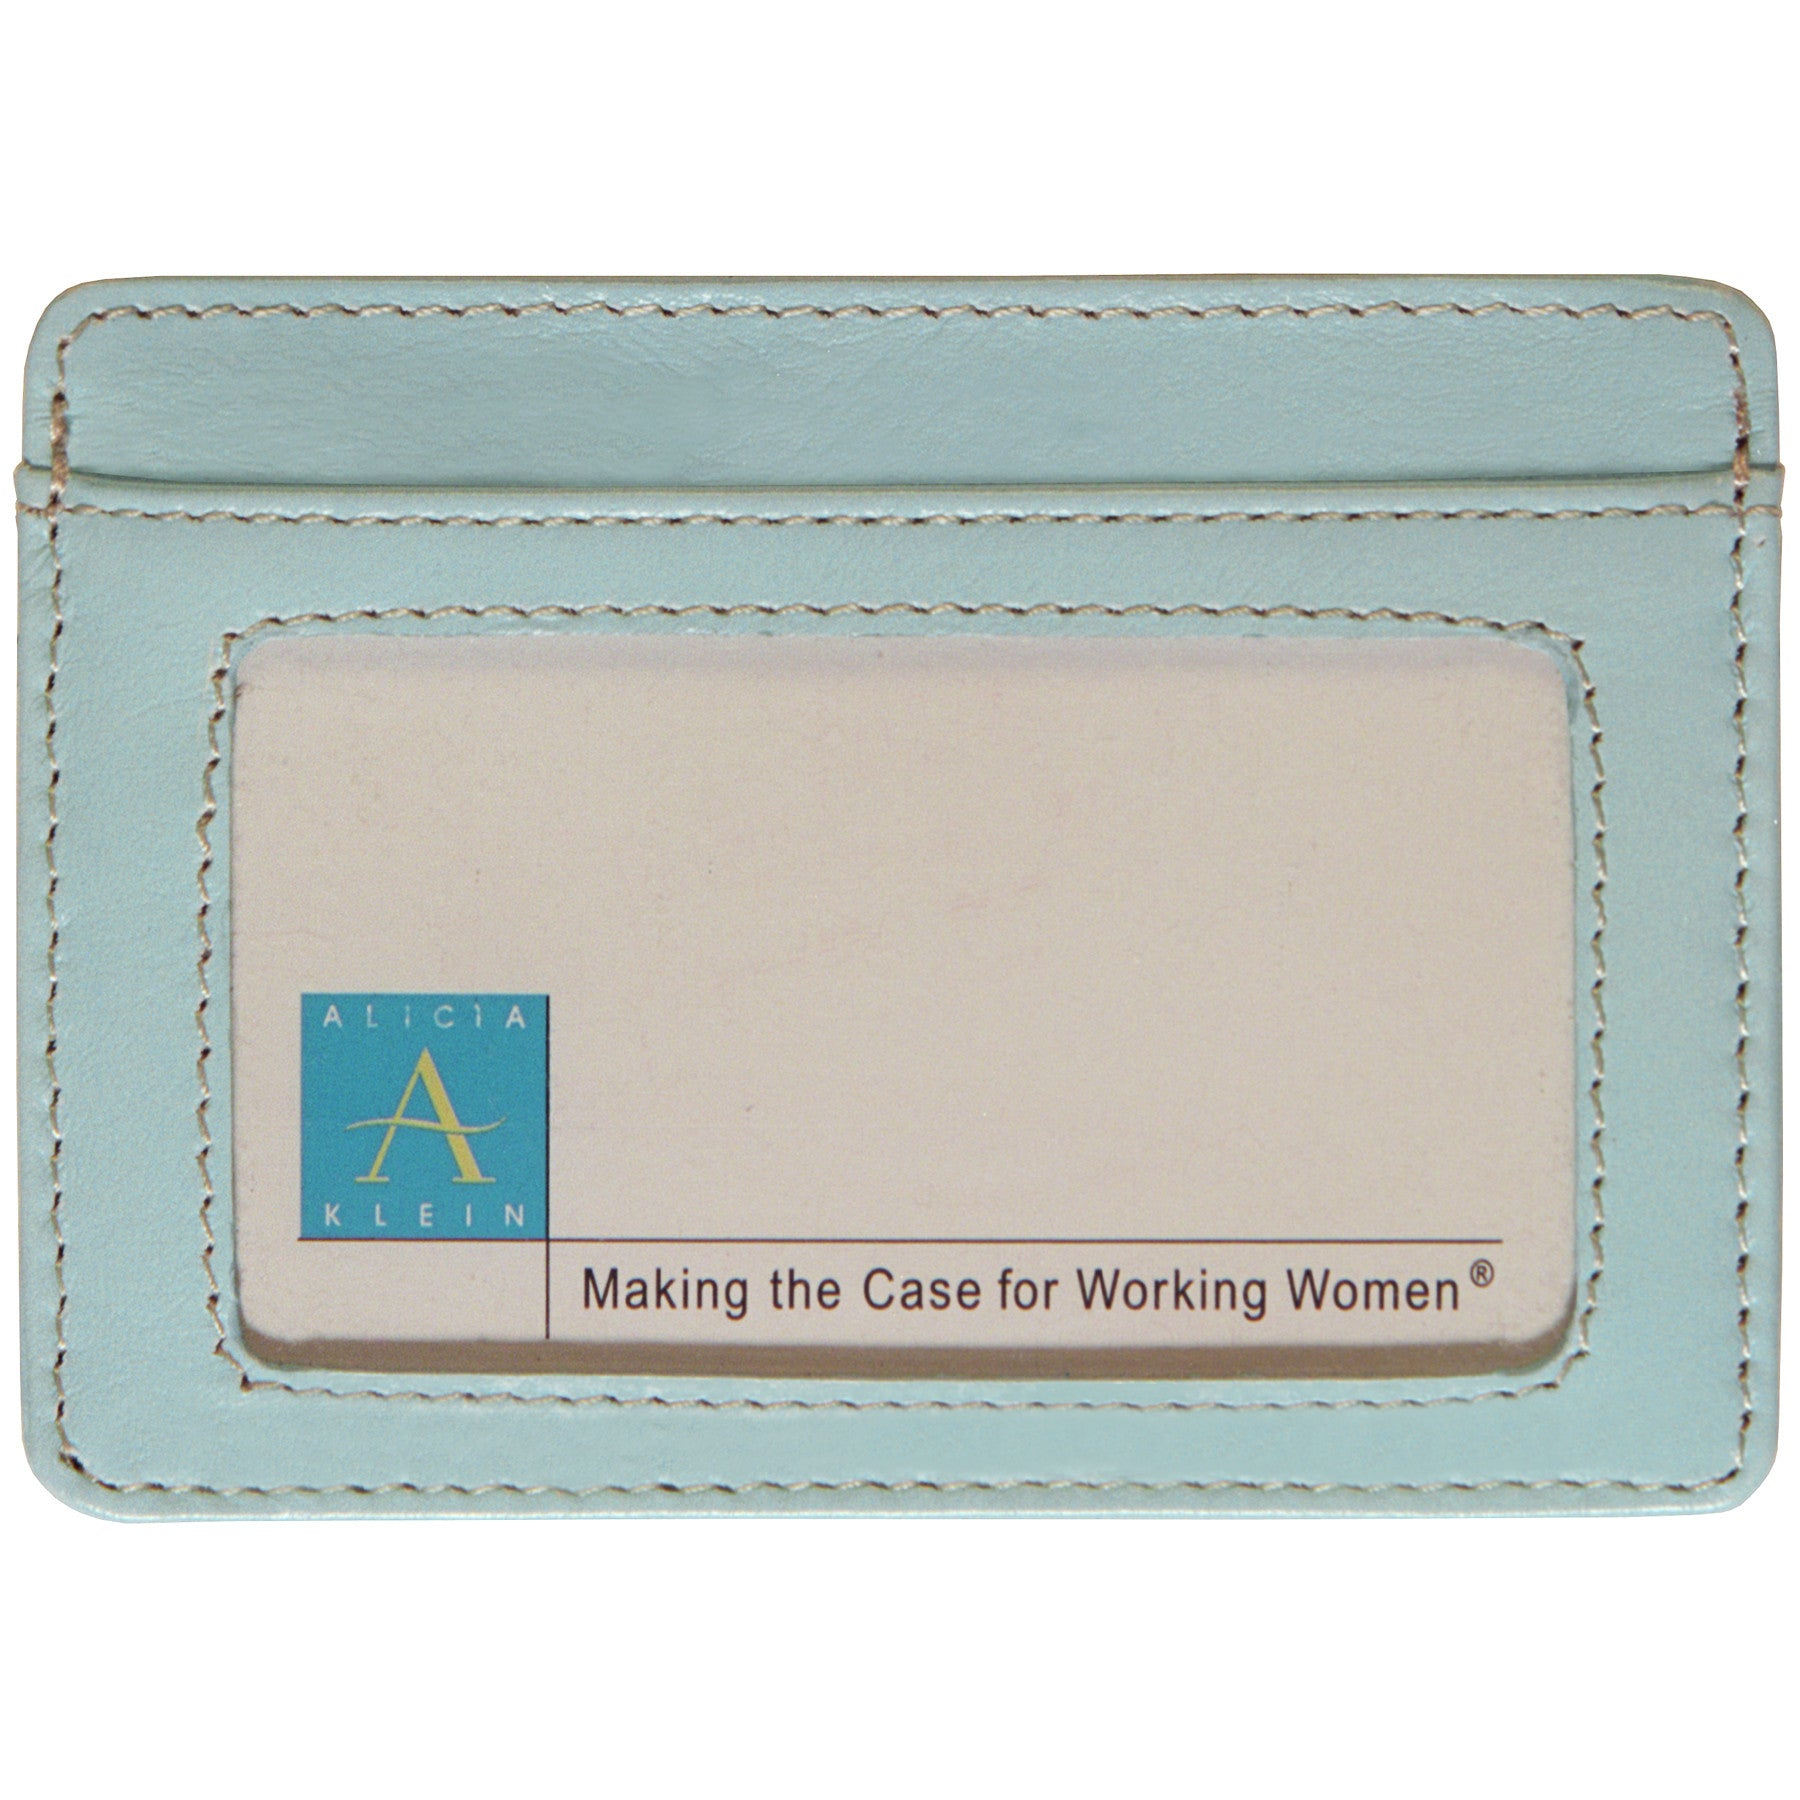 Alicia Klein leather card holder, sky blue